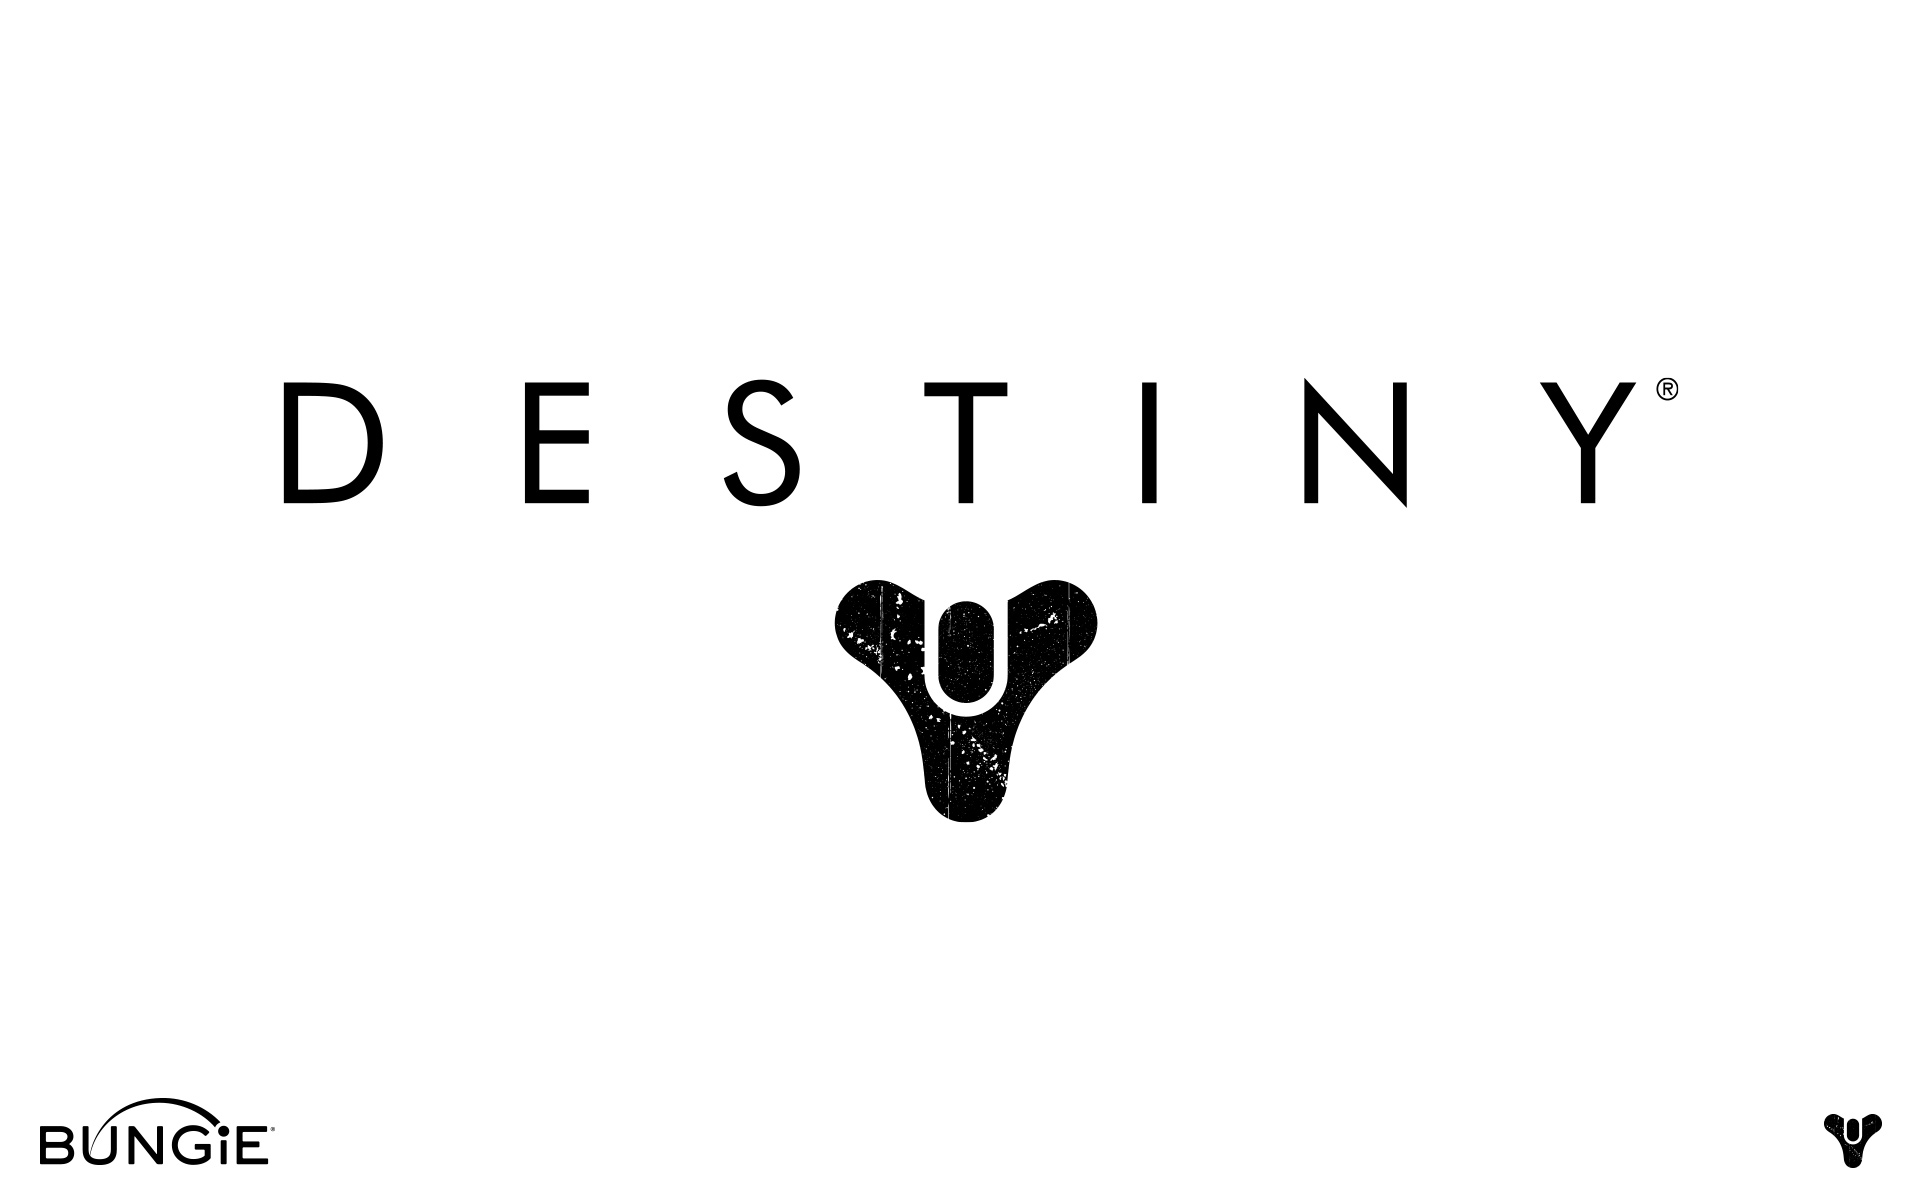 The original Destiny trademark as registered in 2009.